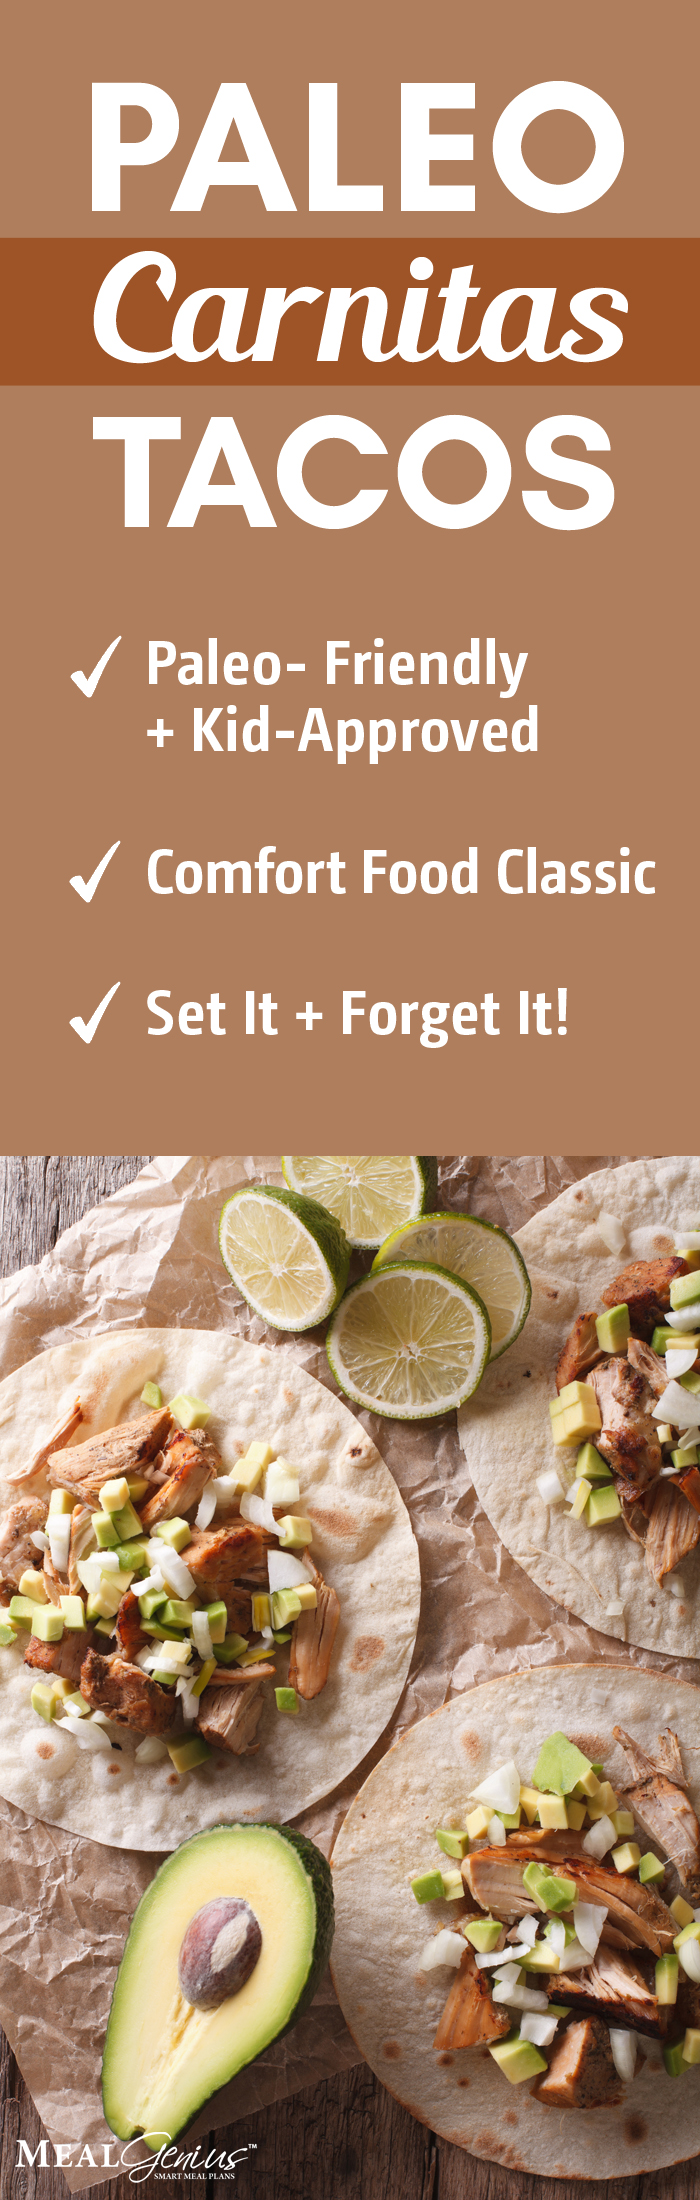 Instant Pot Paleo Carnitas - Meal Genius